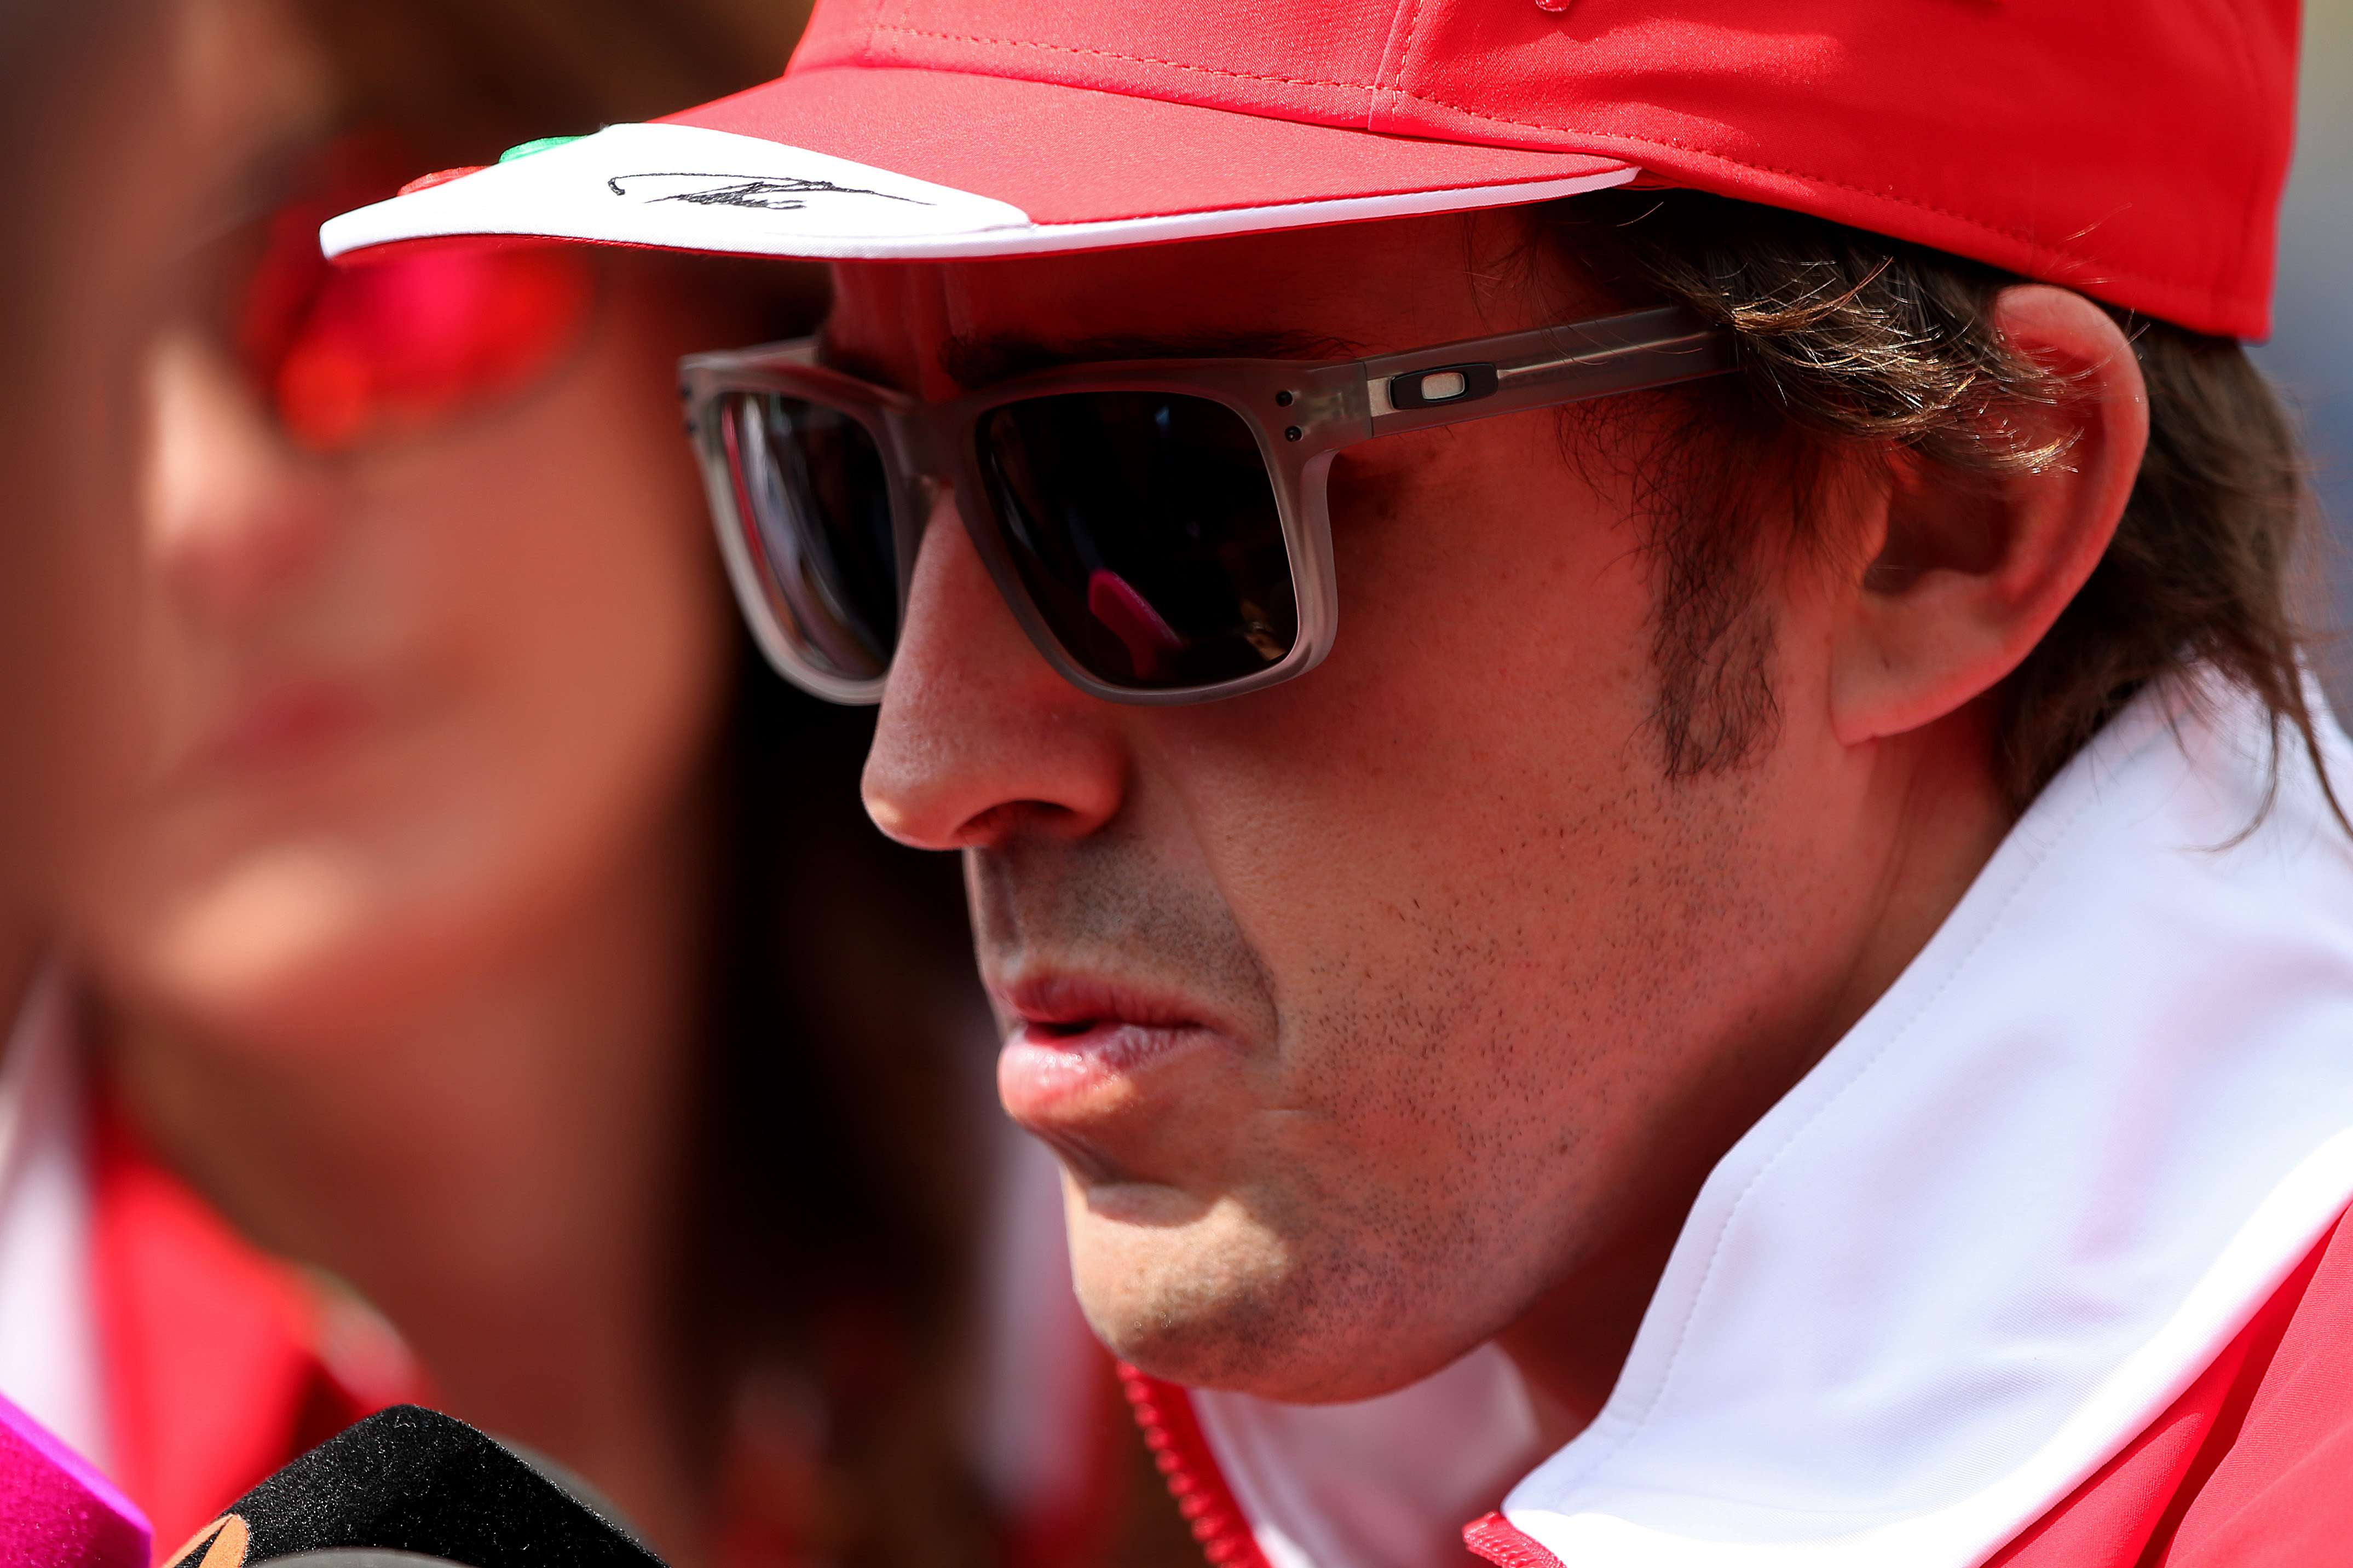 Fernando Alonso, piloto de Fórmula 1 Foto: Getty Images